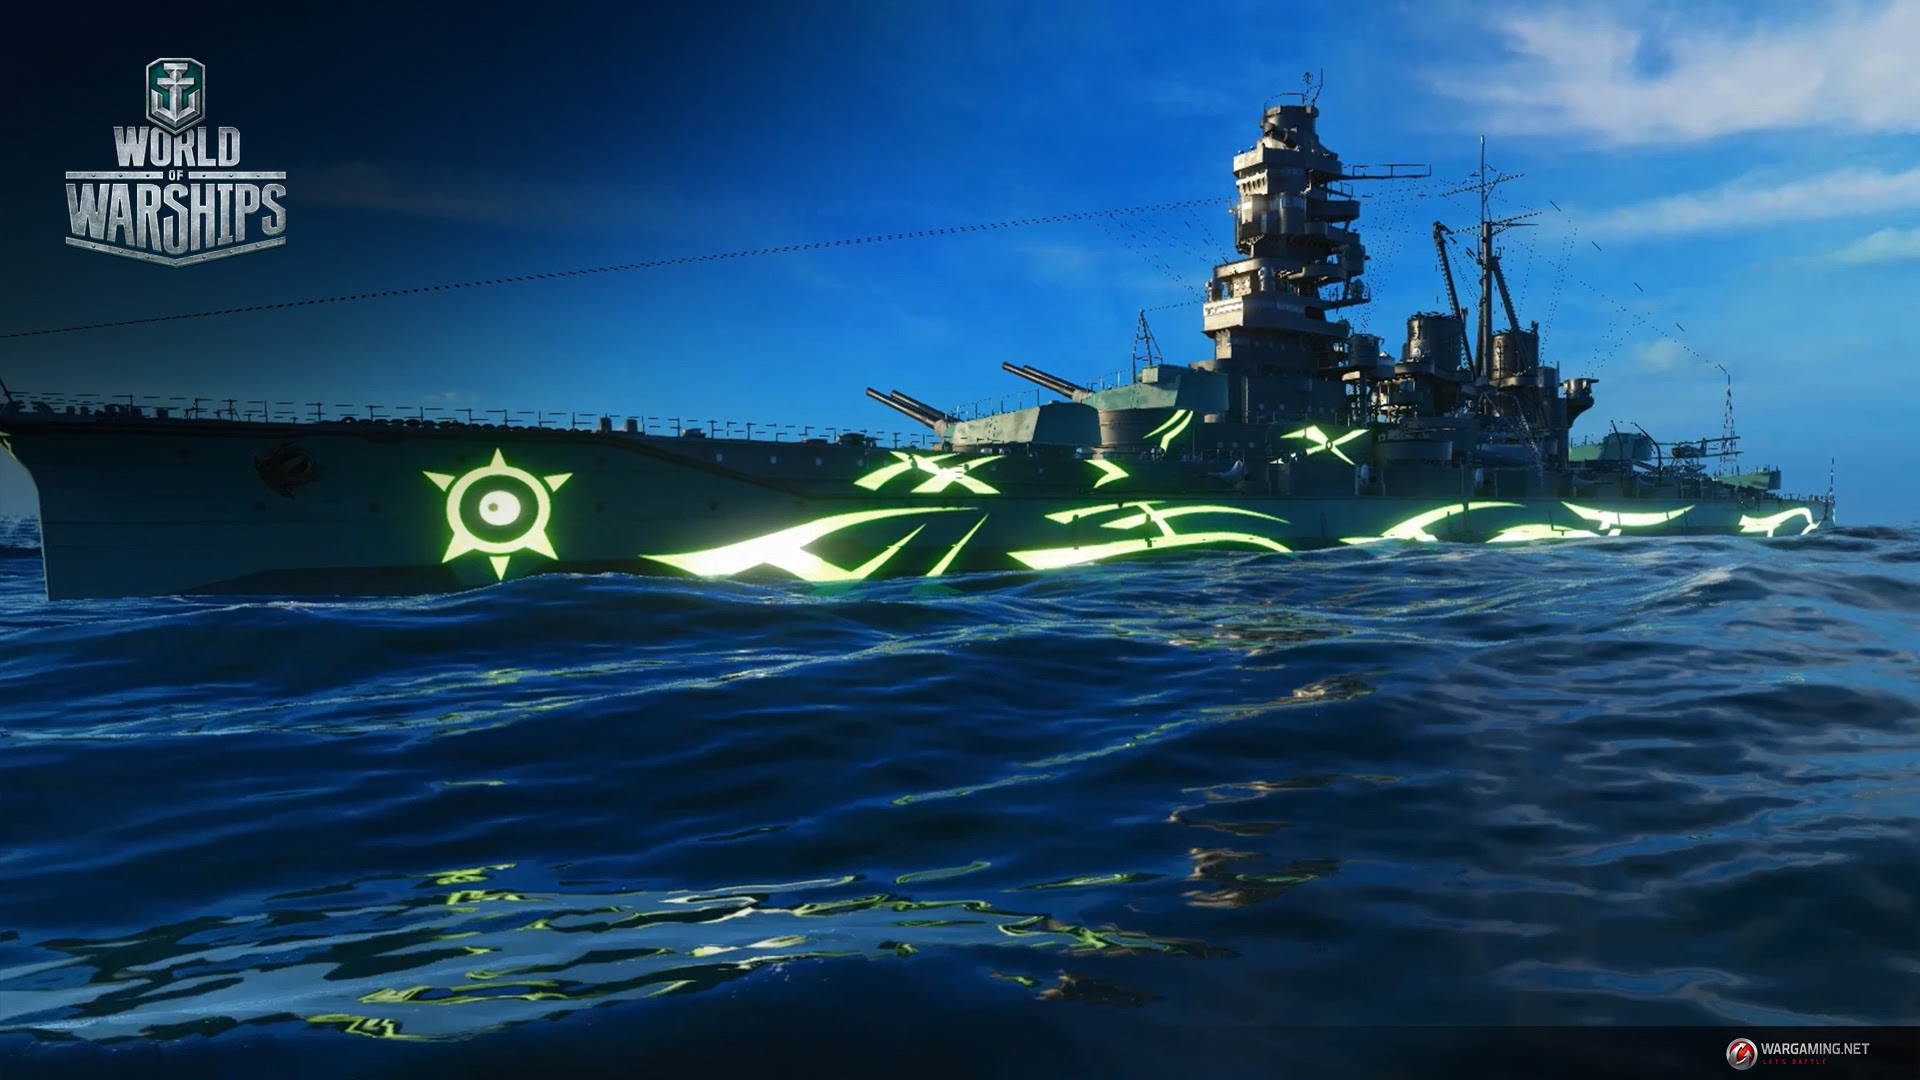 World Of Warships 2048x1152 Anime Top 10 Warships Games For Pc